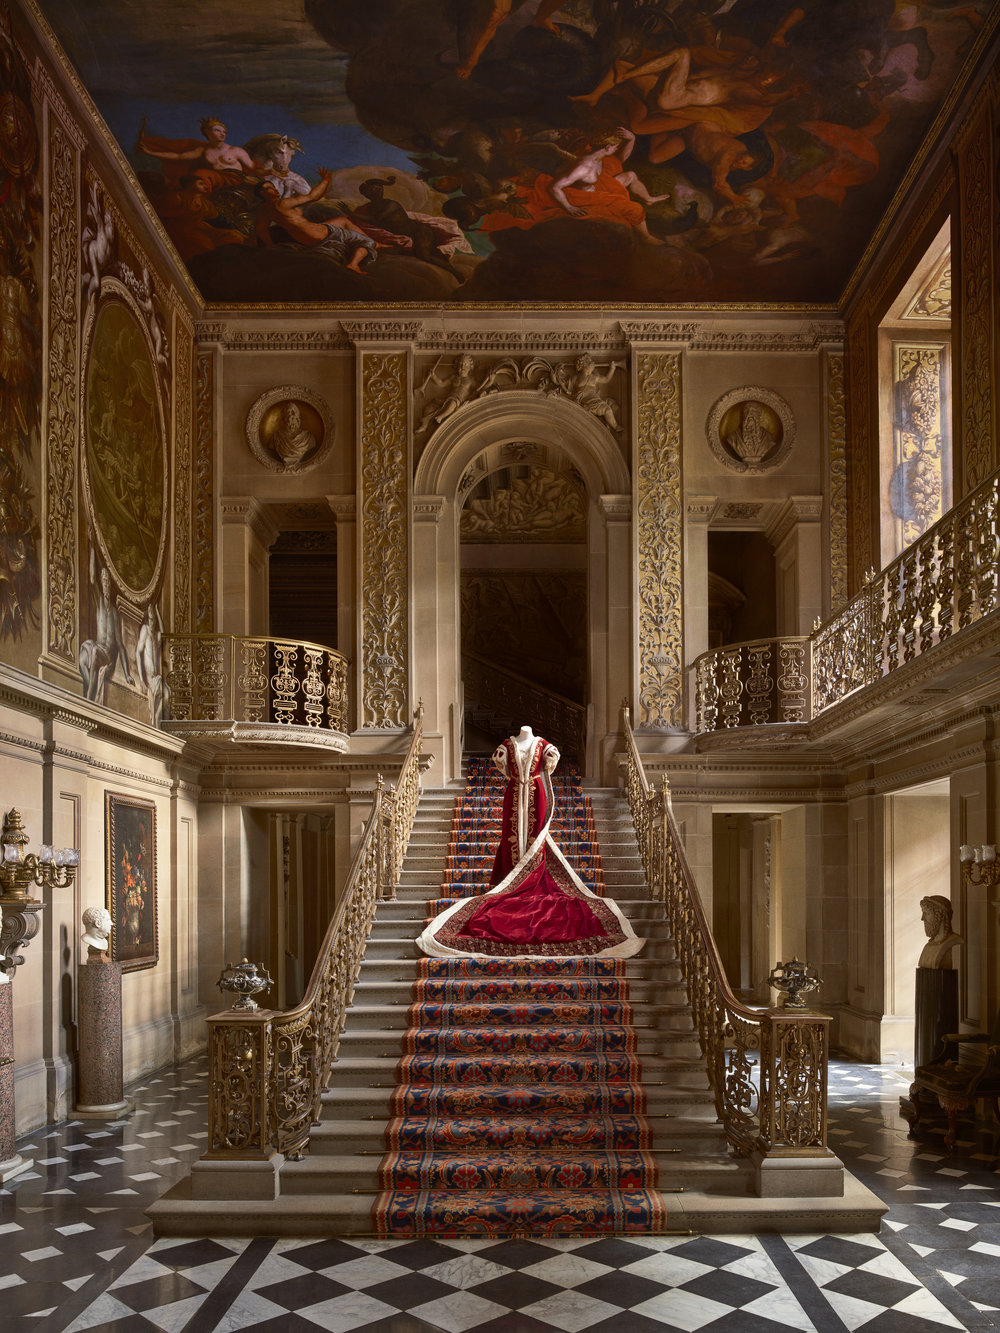 Mistress of the Robes Coronation Gown, Painted Hall, Chatsworth, 2016.  Photo by Thomas Loof, © Chatsworth